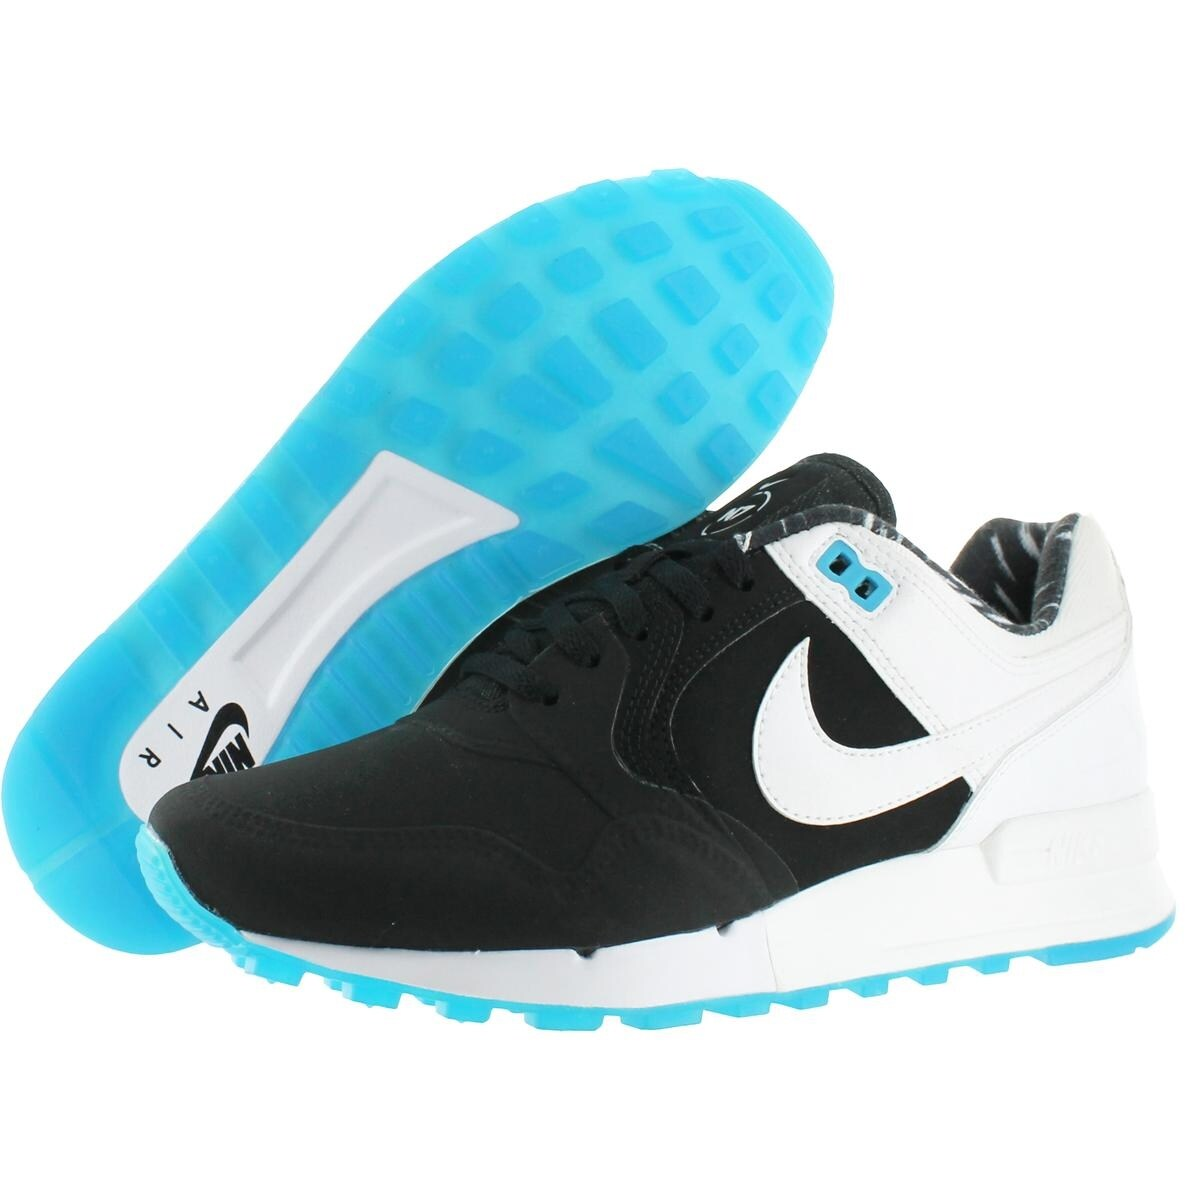 sale retailer a3e88 1b145 Shop Nike Mens Air Pegasus 89 PRM SE N7 Running Shoes Colorblock Cushioned  - Free Shipping On Orders Over 45 - Overstock - 21941978